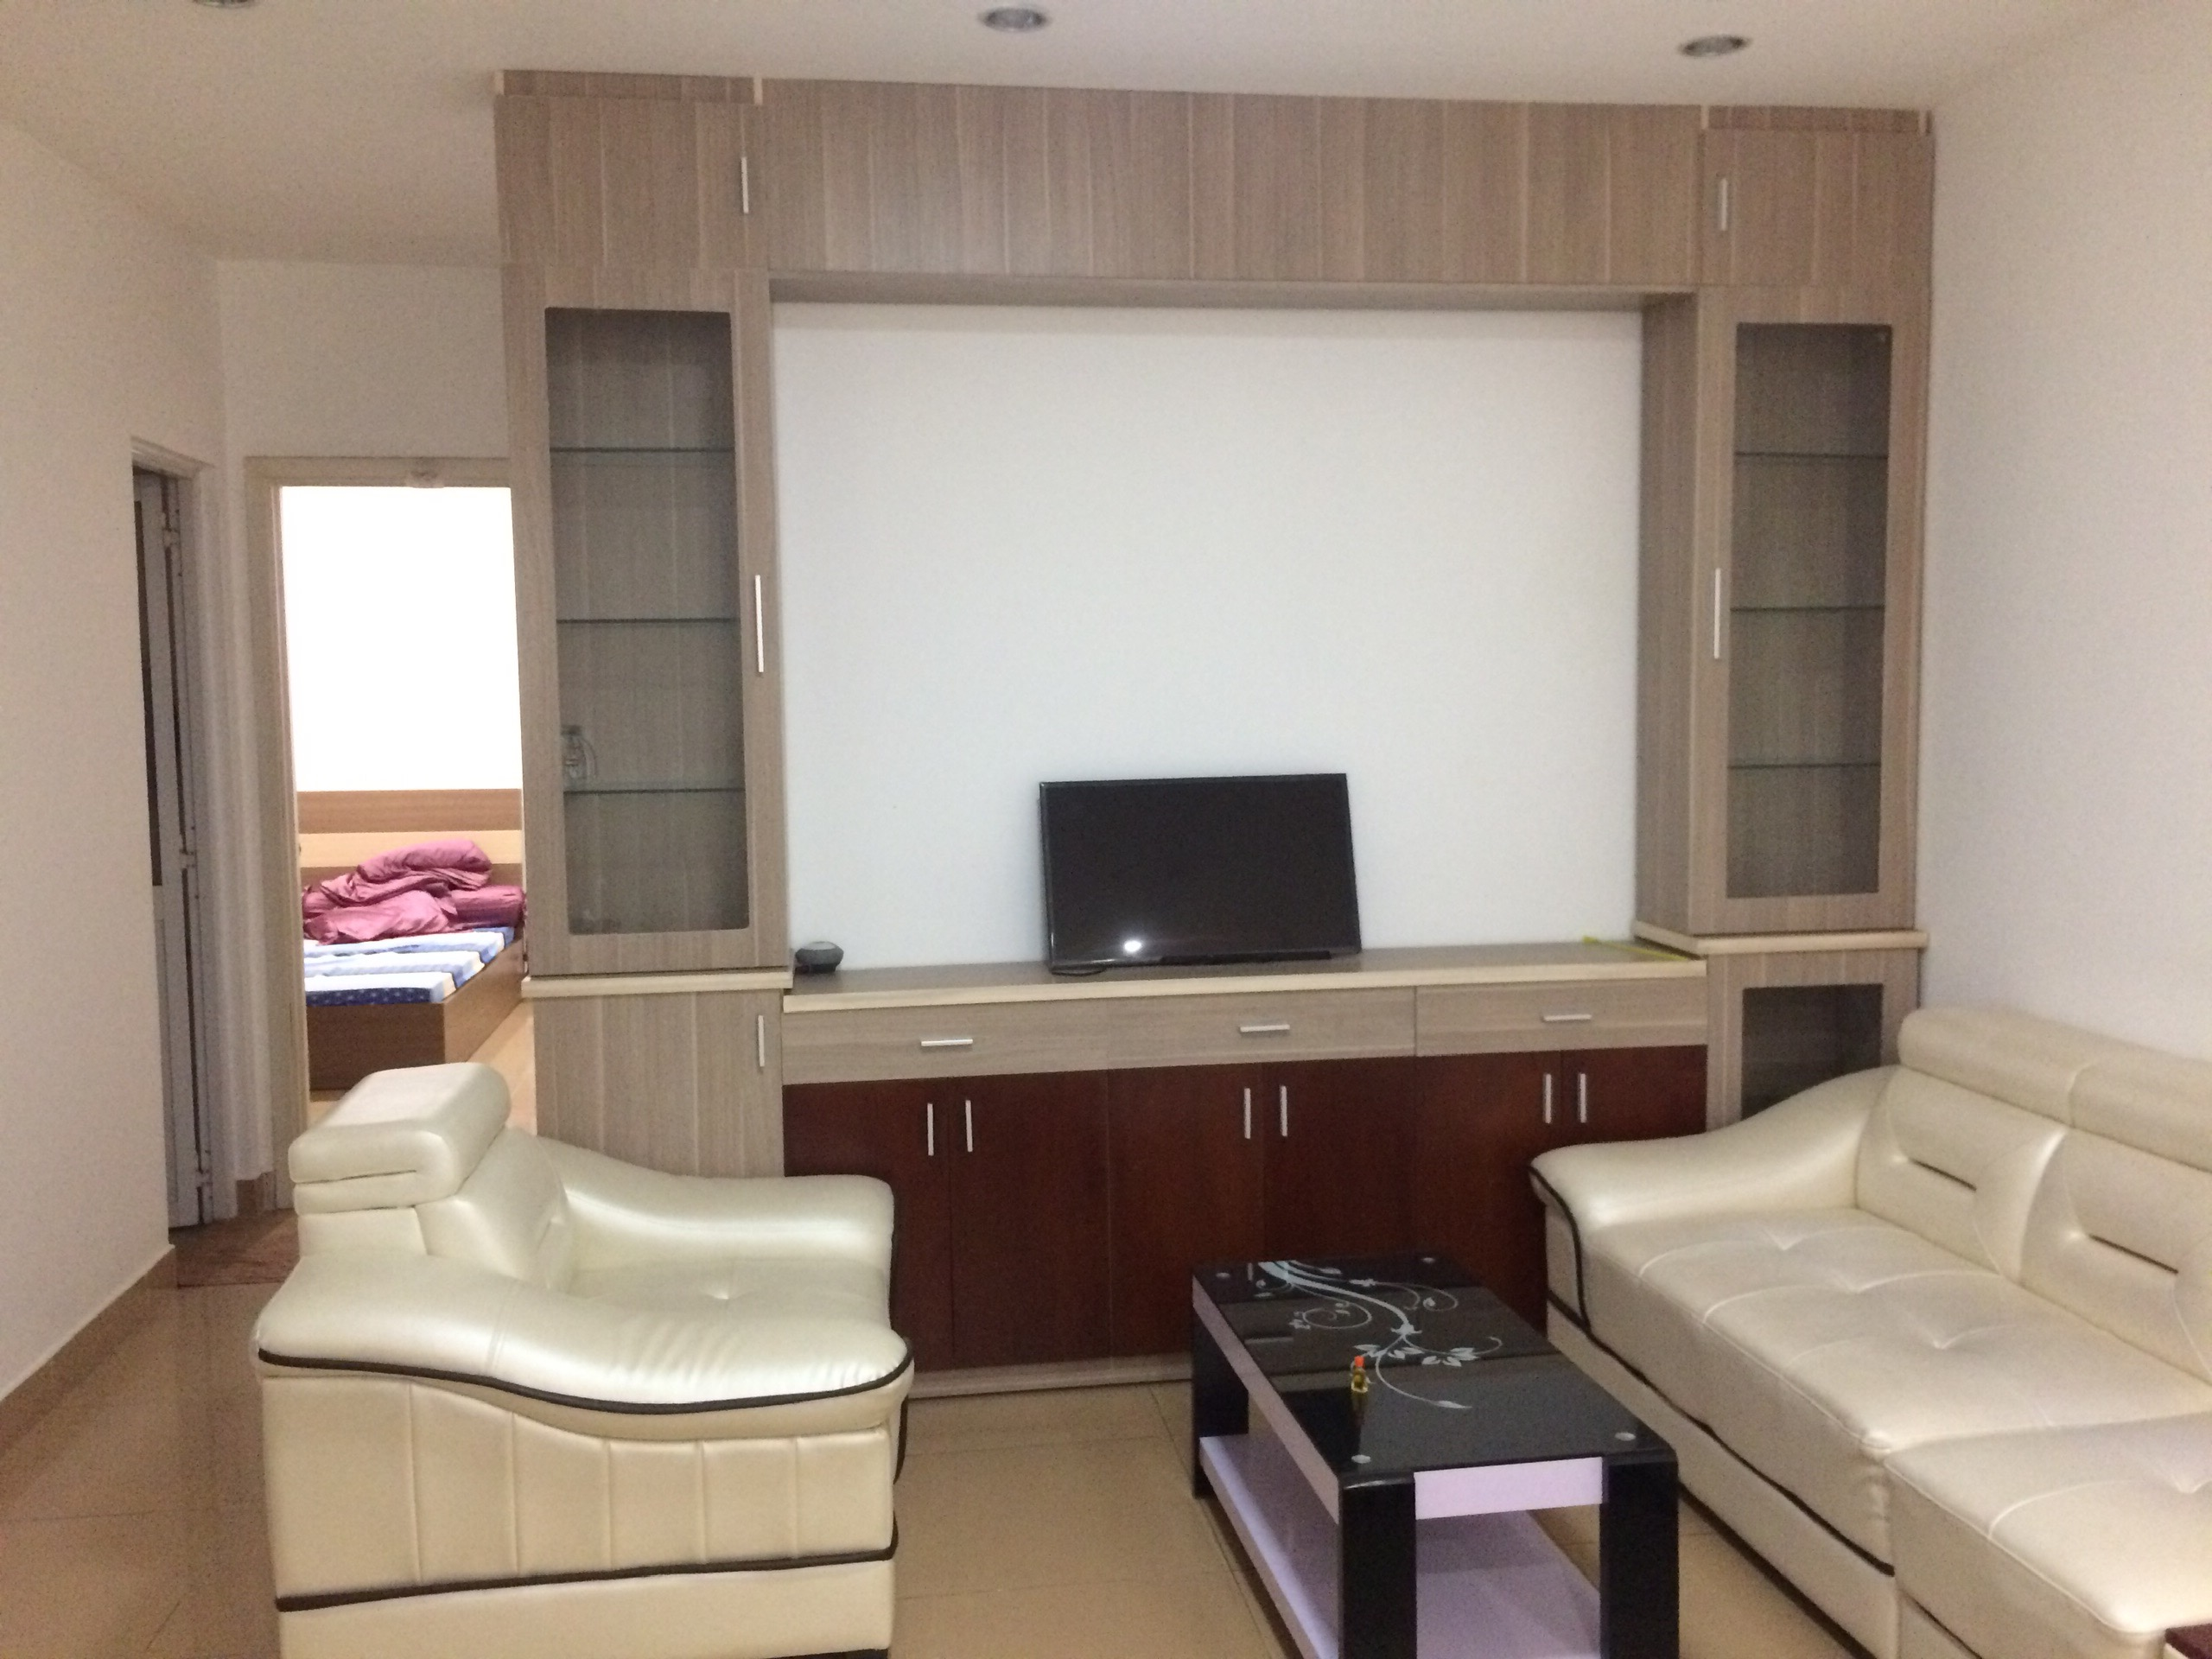 rent Him Lam Nam Khanh - 2 bedroom - 2 wc